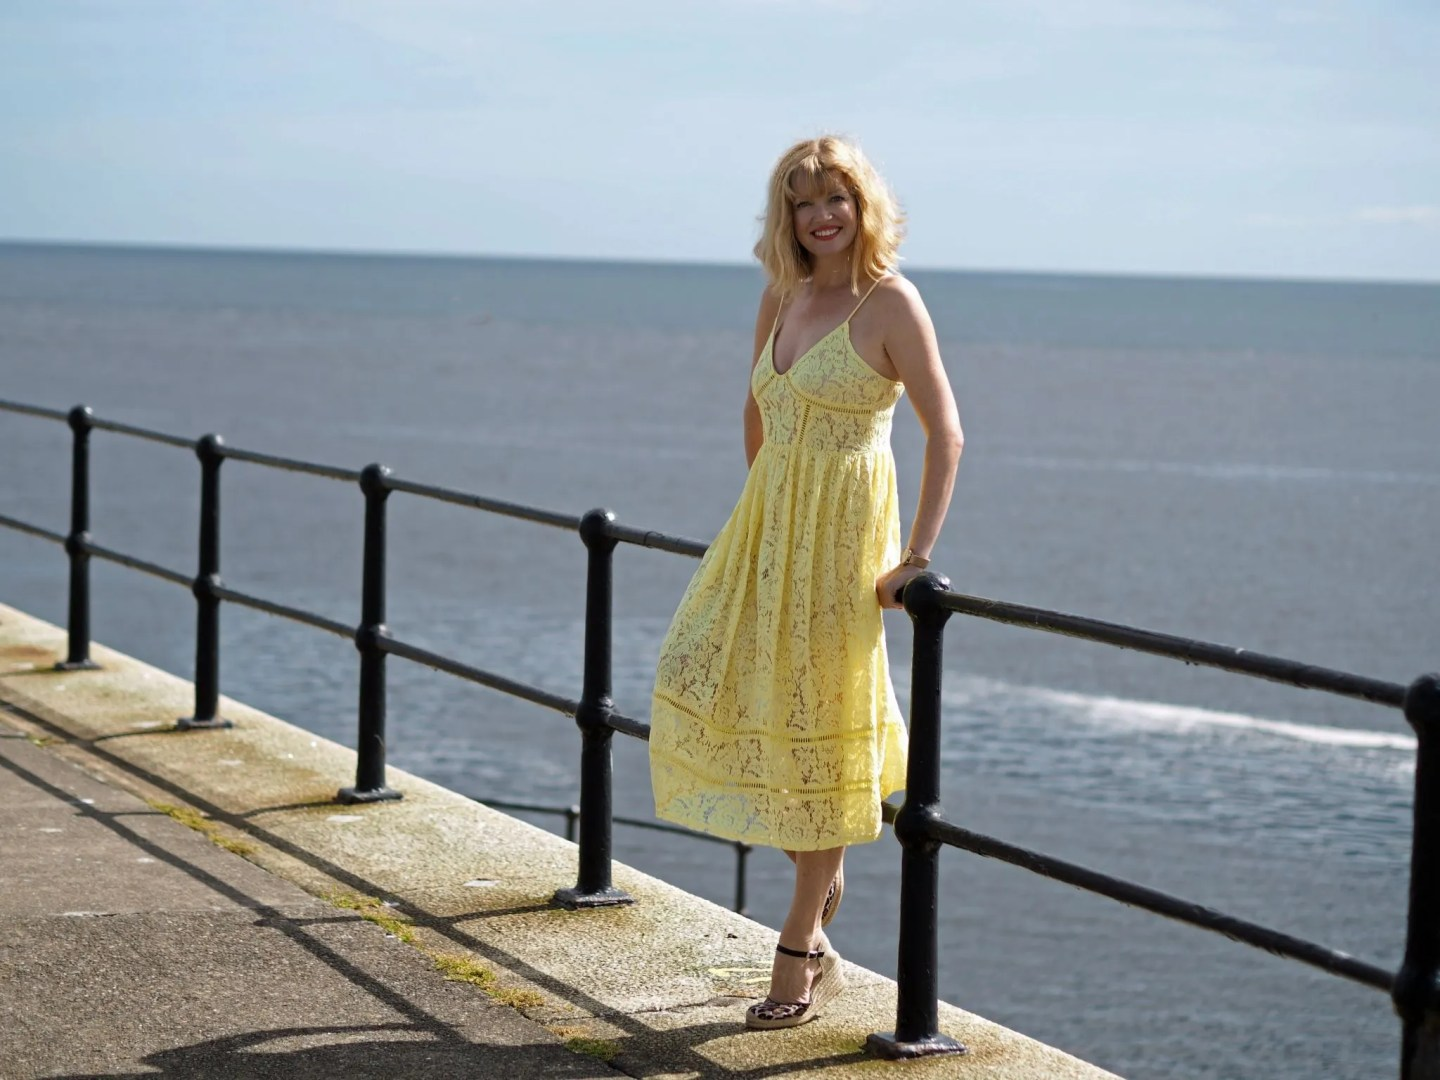 what-lizzy-loves-yellow-lace-midi-dress-yellowlacedress-leopard-espadrilles-tynemouth-north-pier